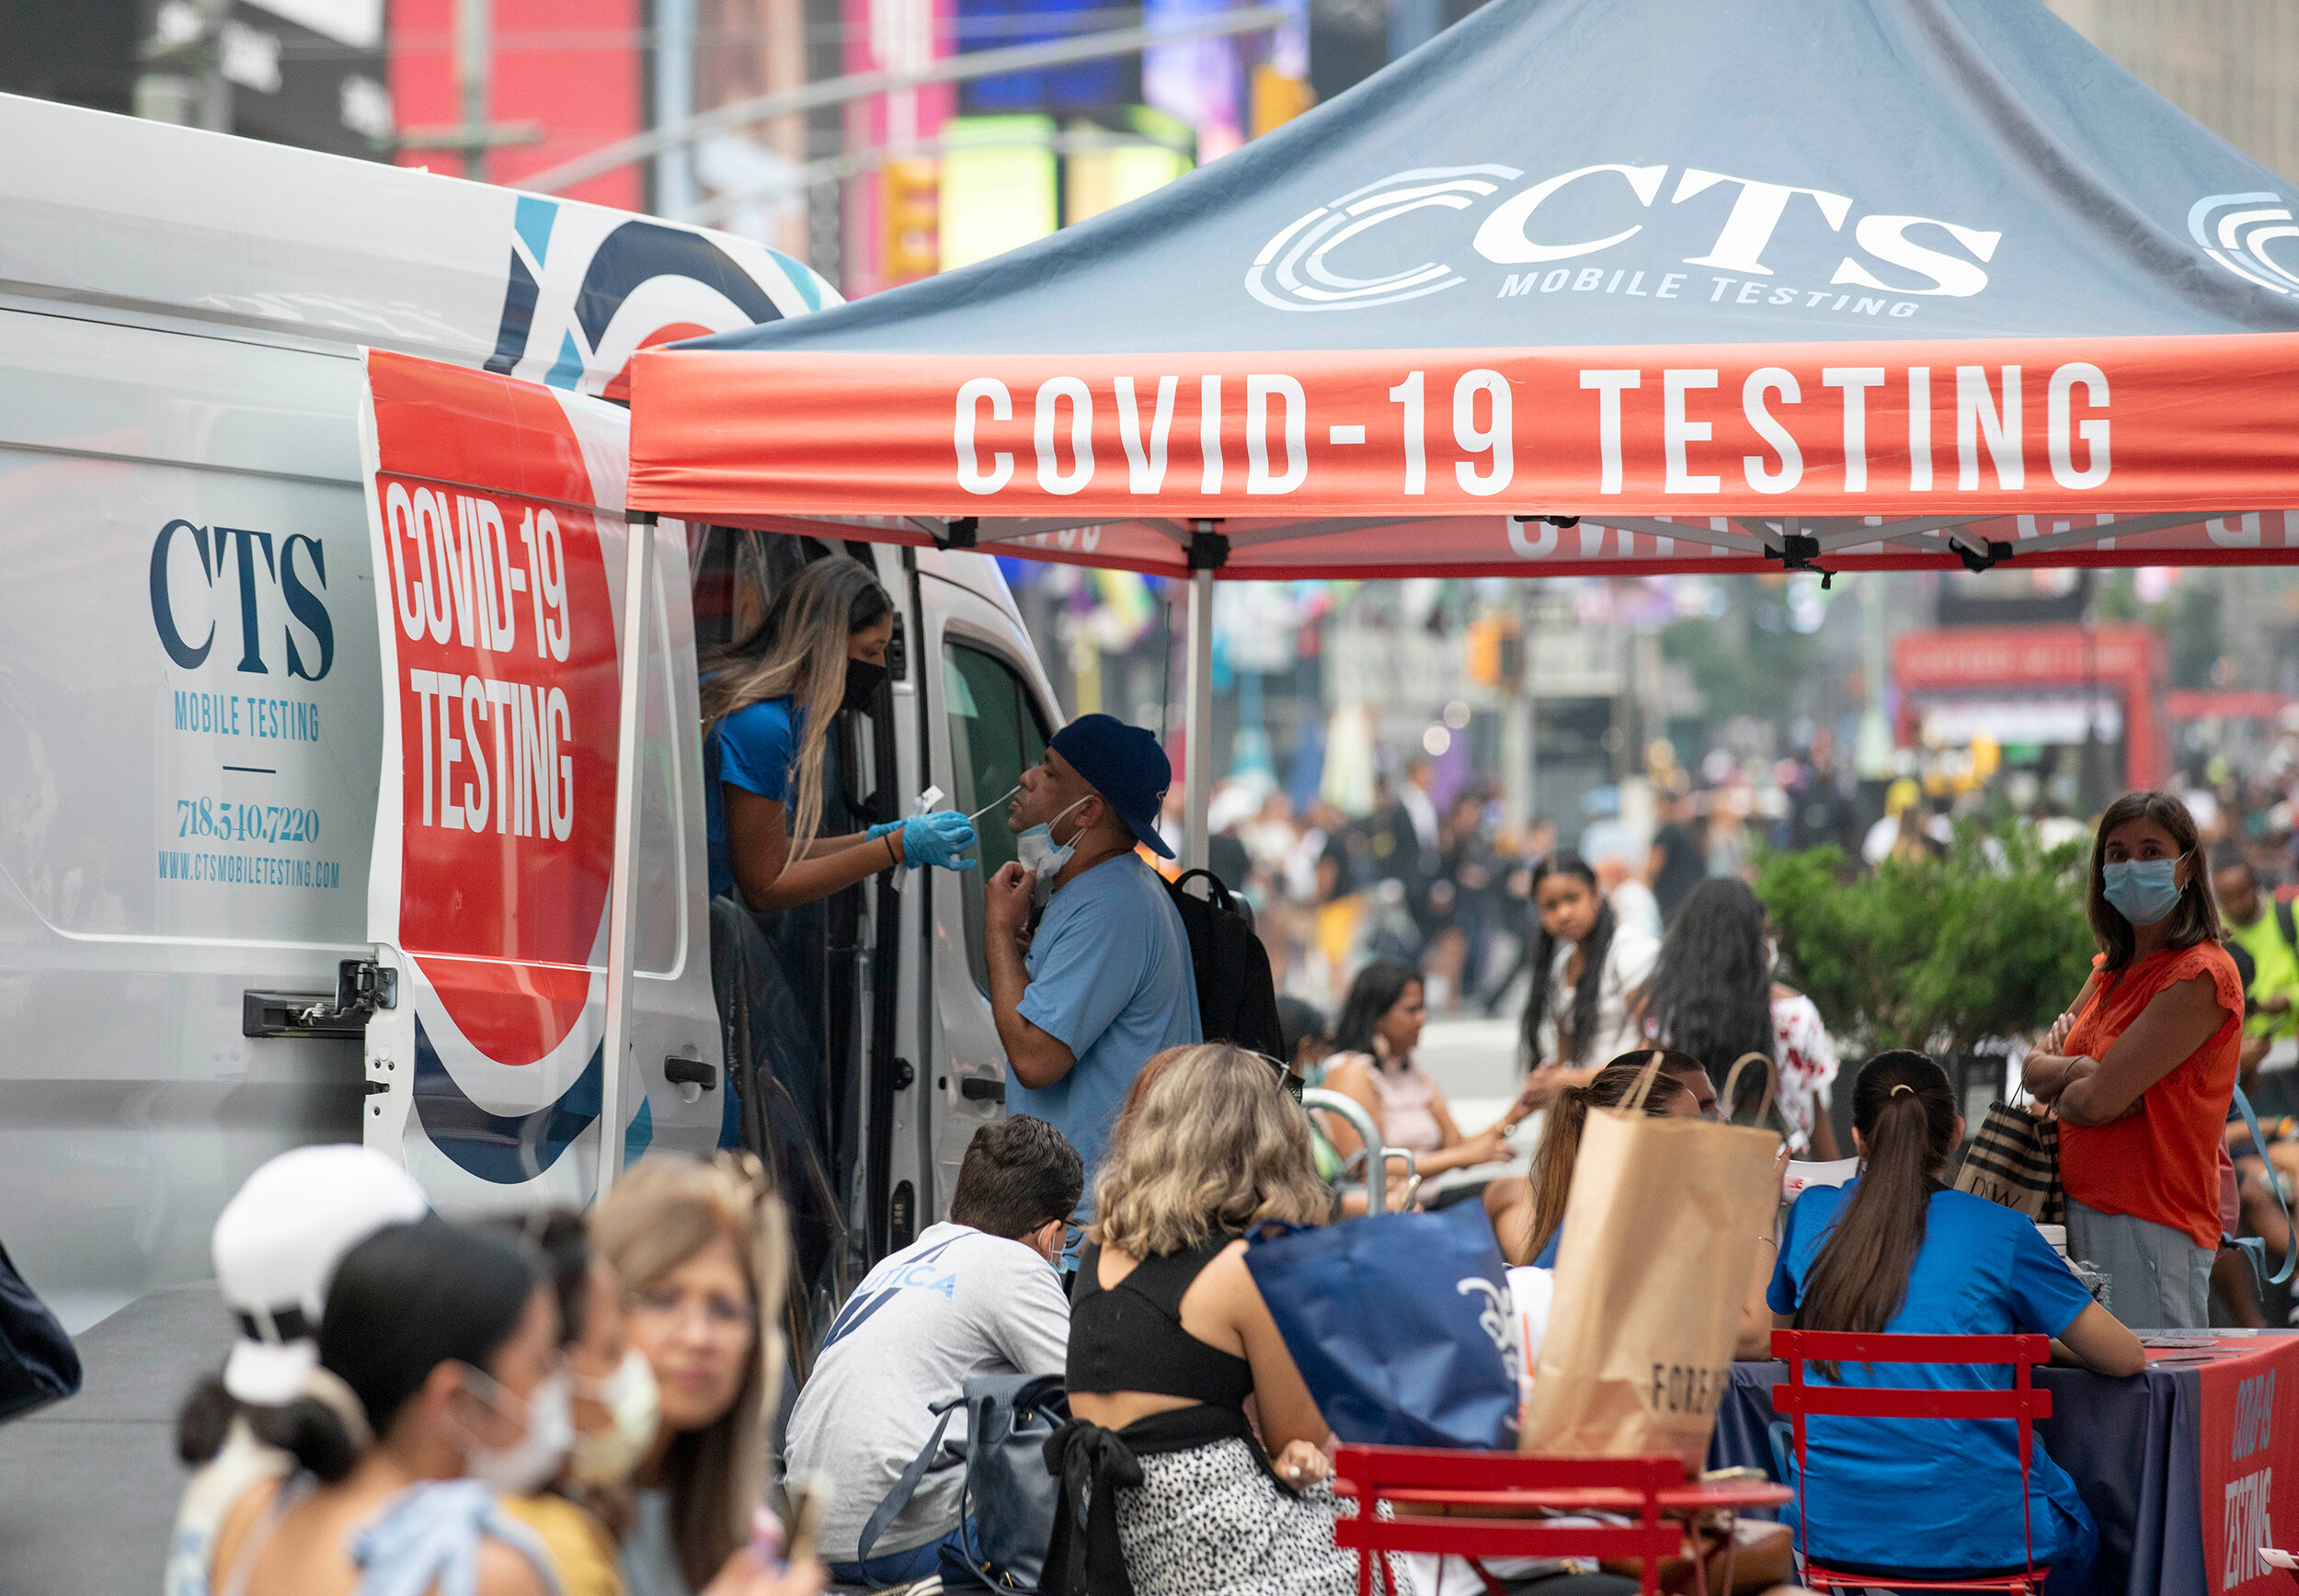 <i>Wang Ying/Xinhua/Sipa USA/FILE</i><br/>A man receives a Covid-19 test at a mobile testing site in Times Square